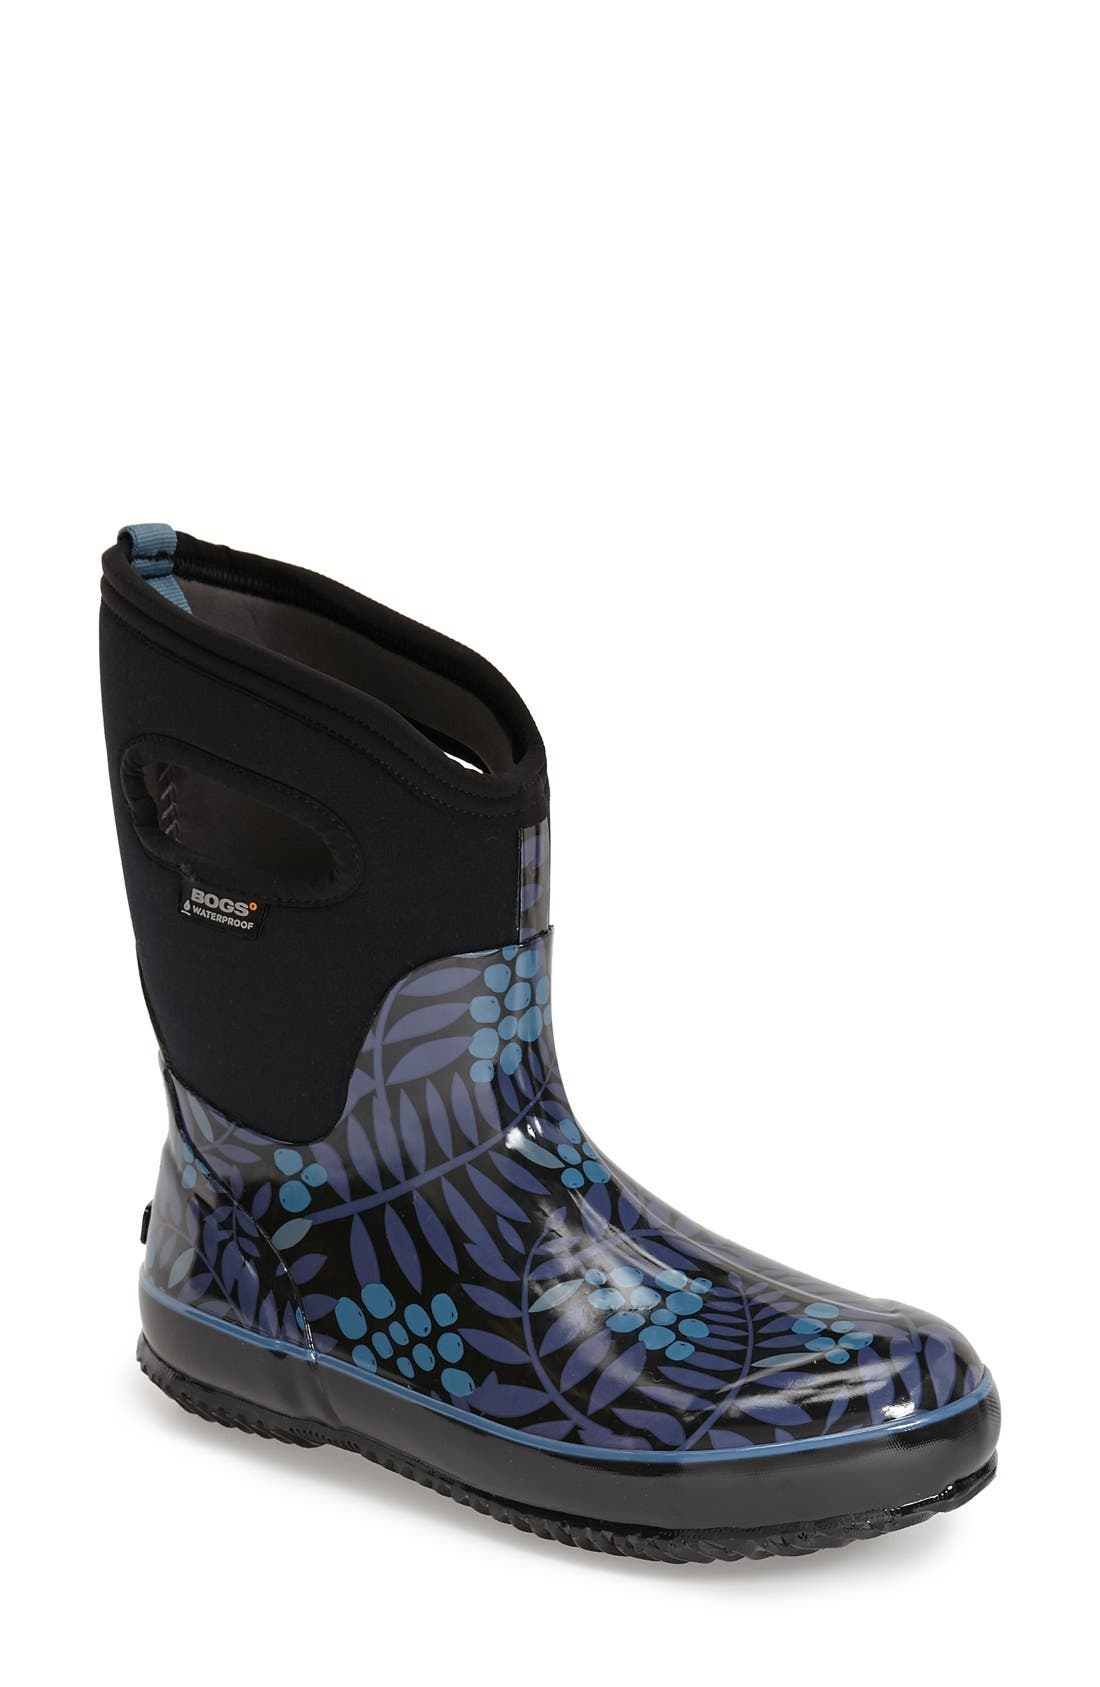 Bogs 'Winterberry' Mid High Waterproof Snow Boot with Cutout Handles (Women)